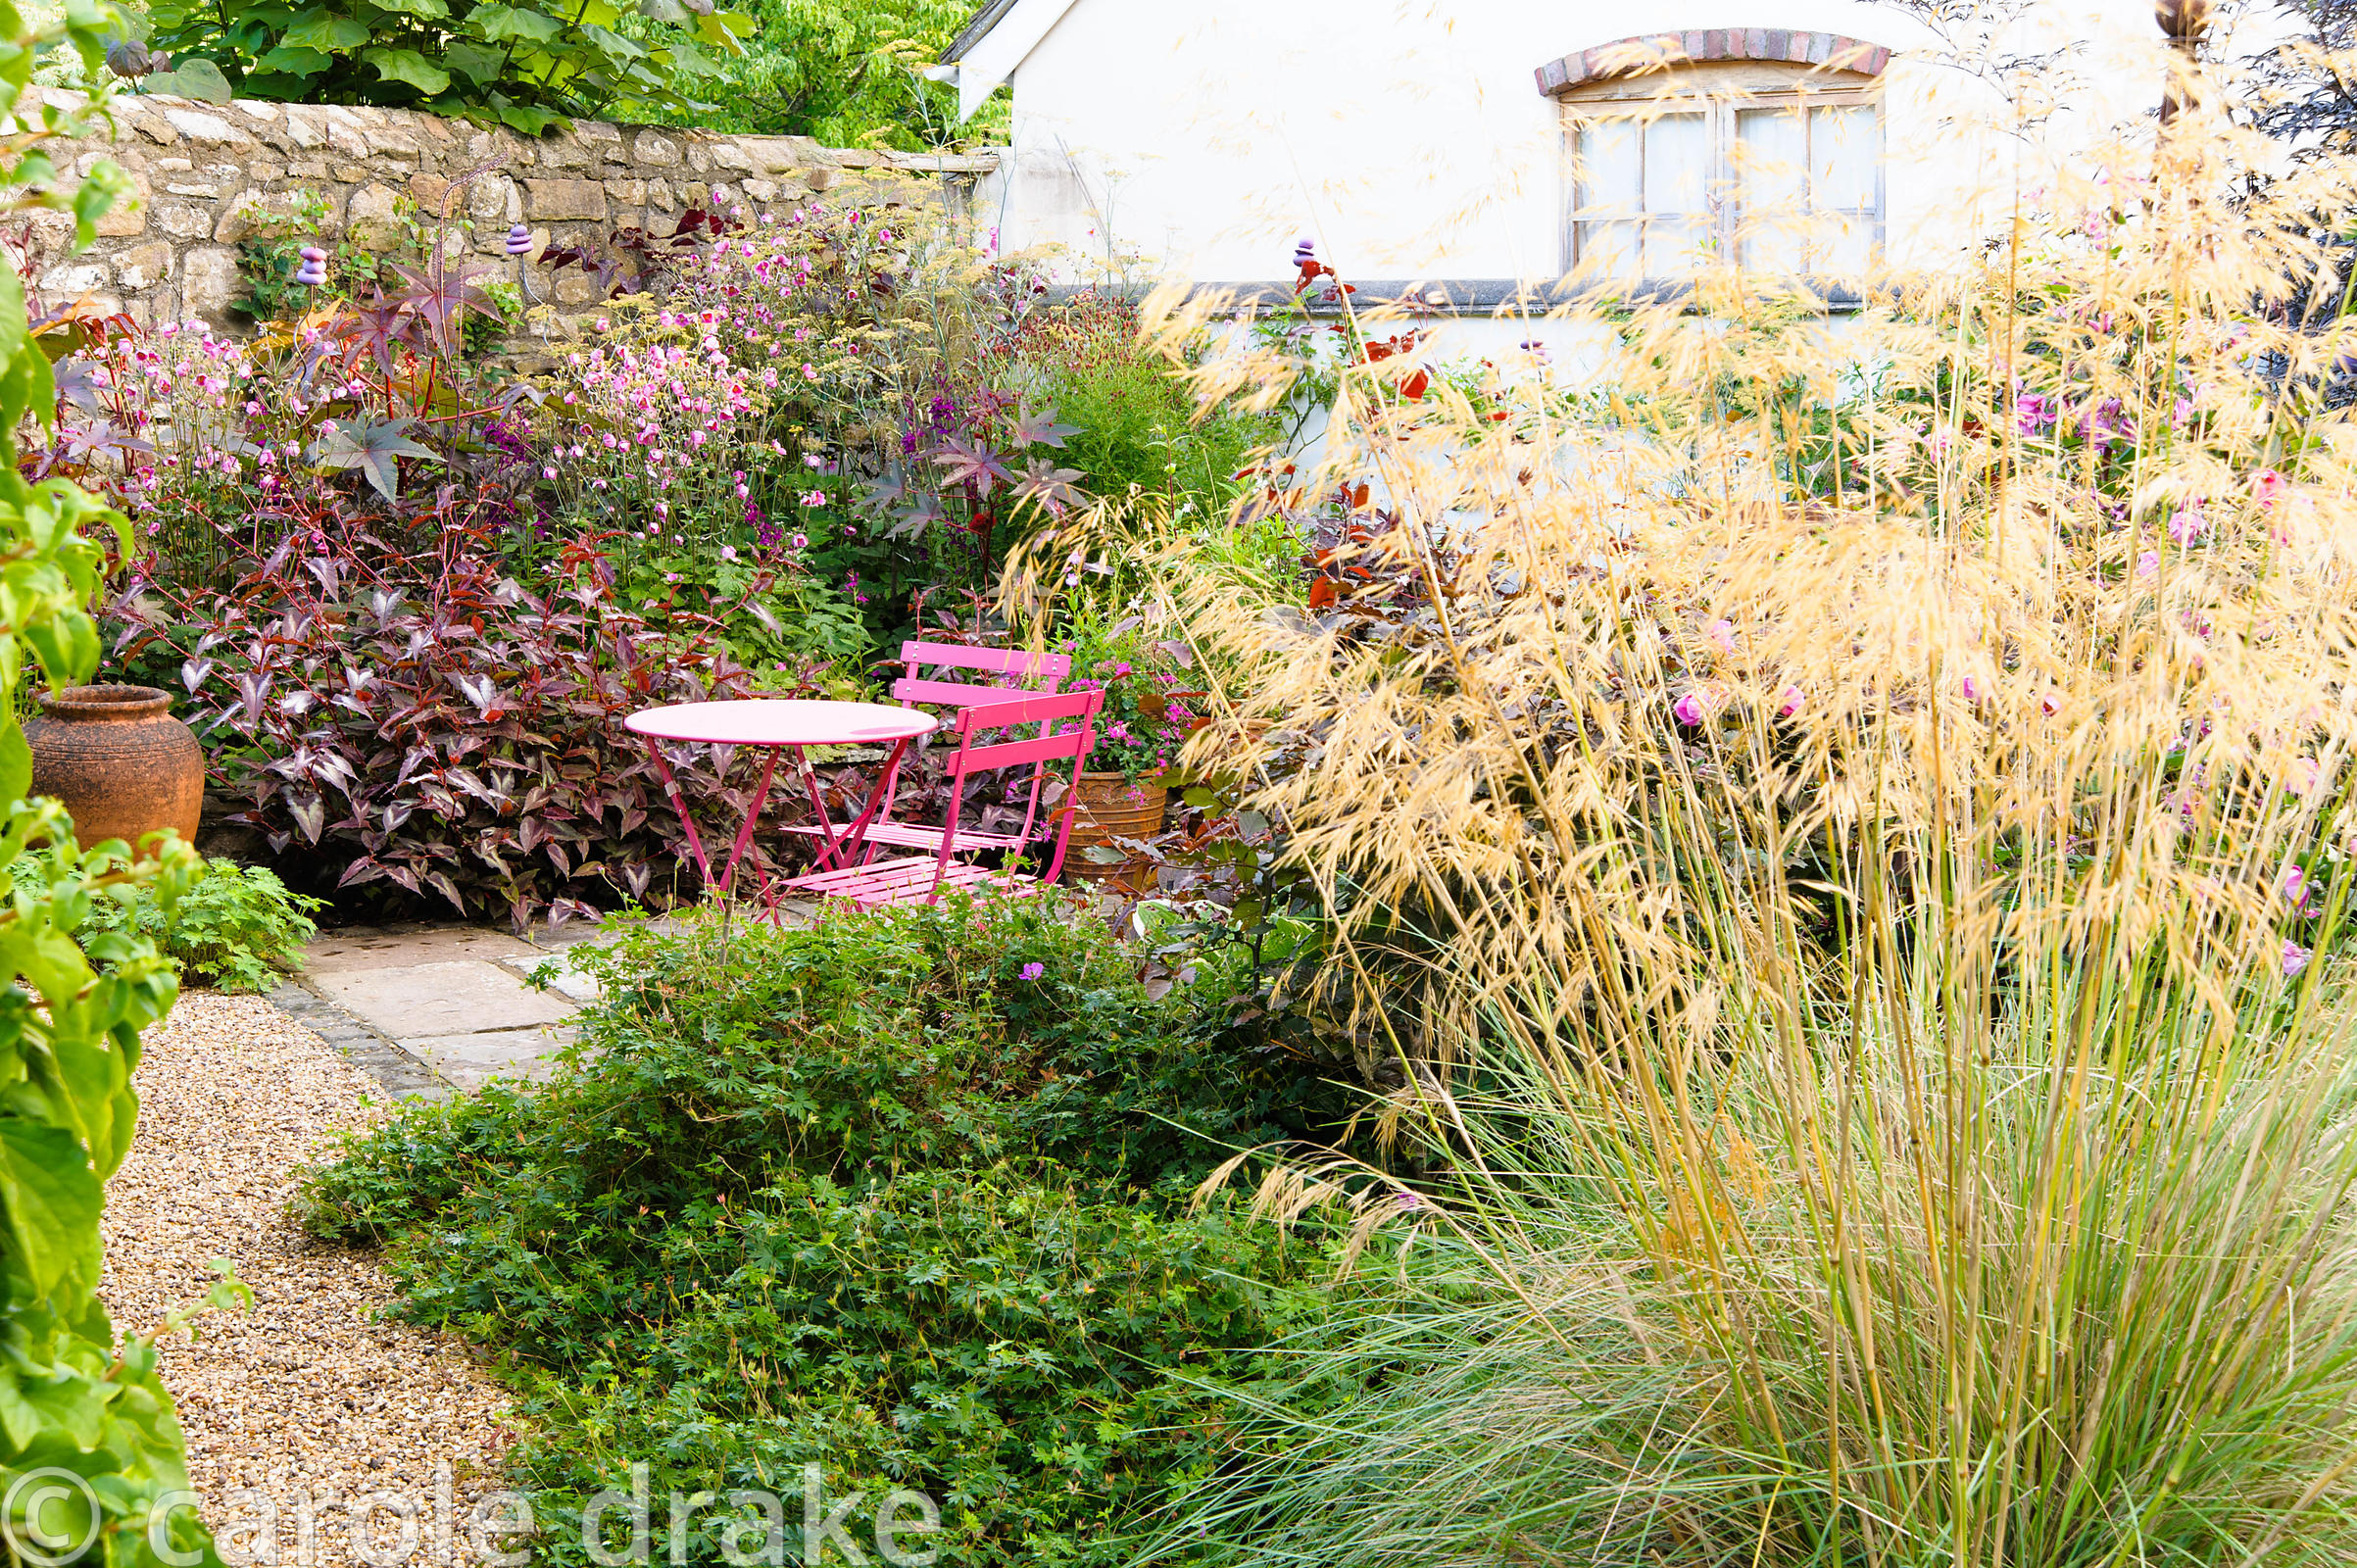 Stipa gigantea marks the entrance to a small courtyard garden planted with purple plants including Persicaria microcephala 'R...